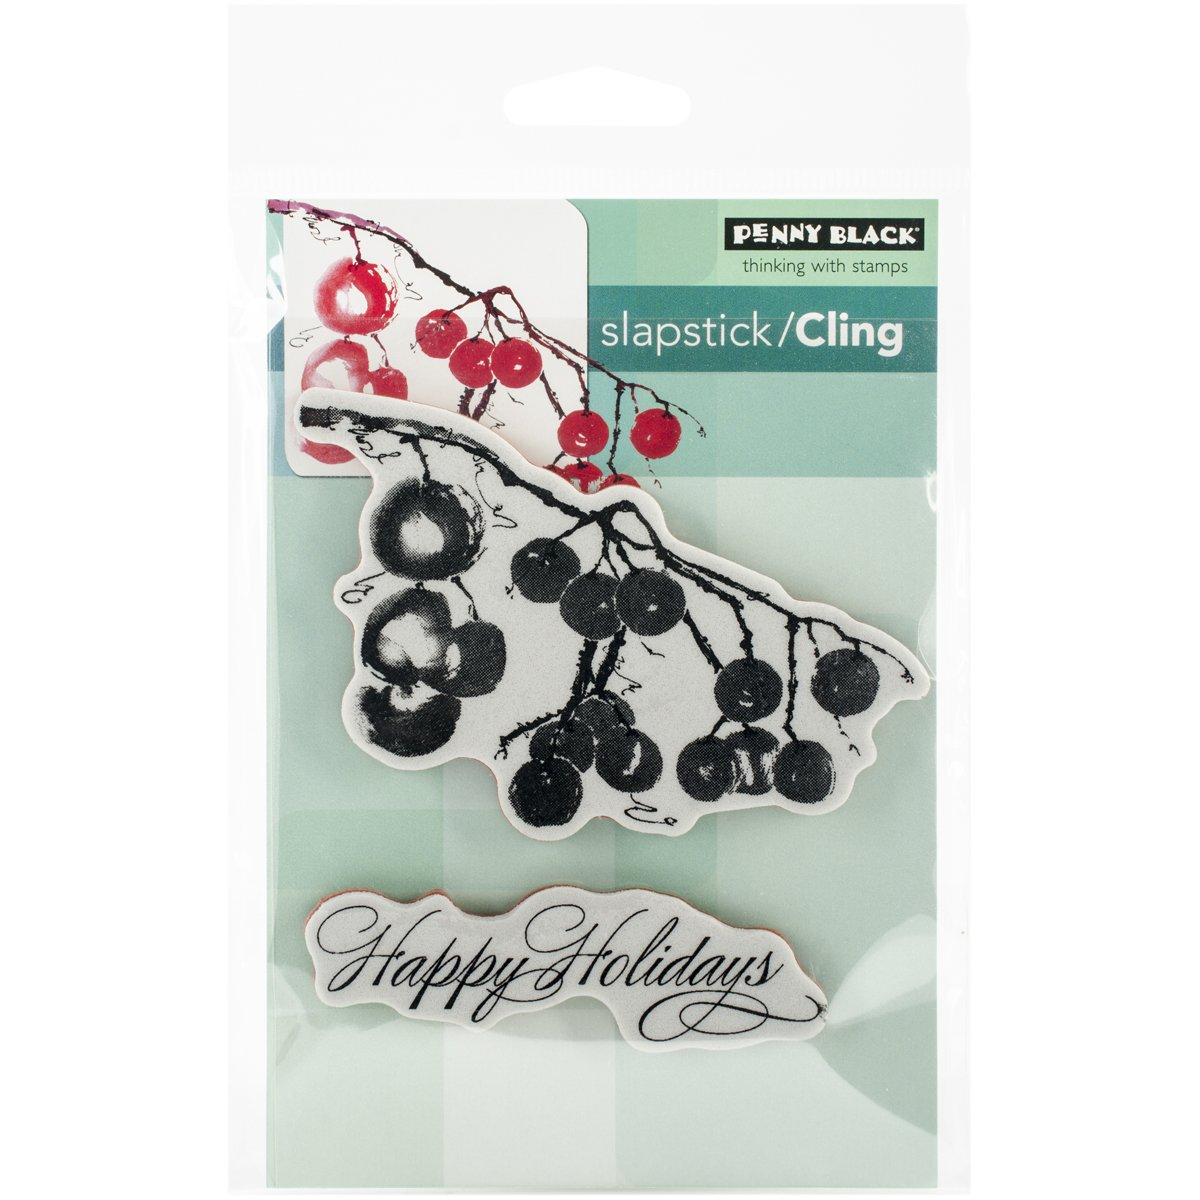 Berry Merry Christmas Penny Black 40-346 Decorative Rubber Stamps